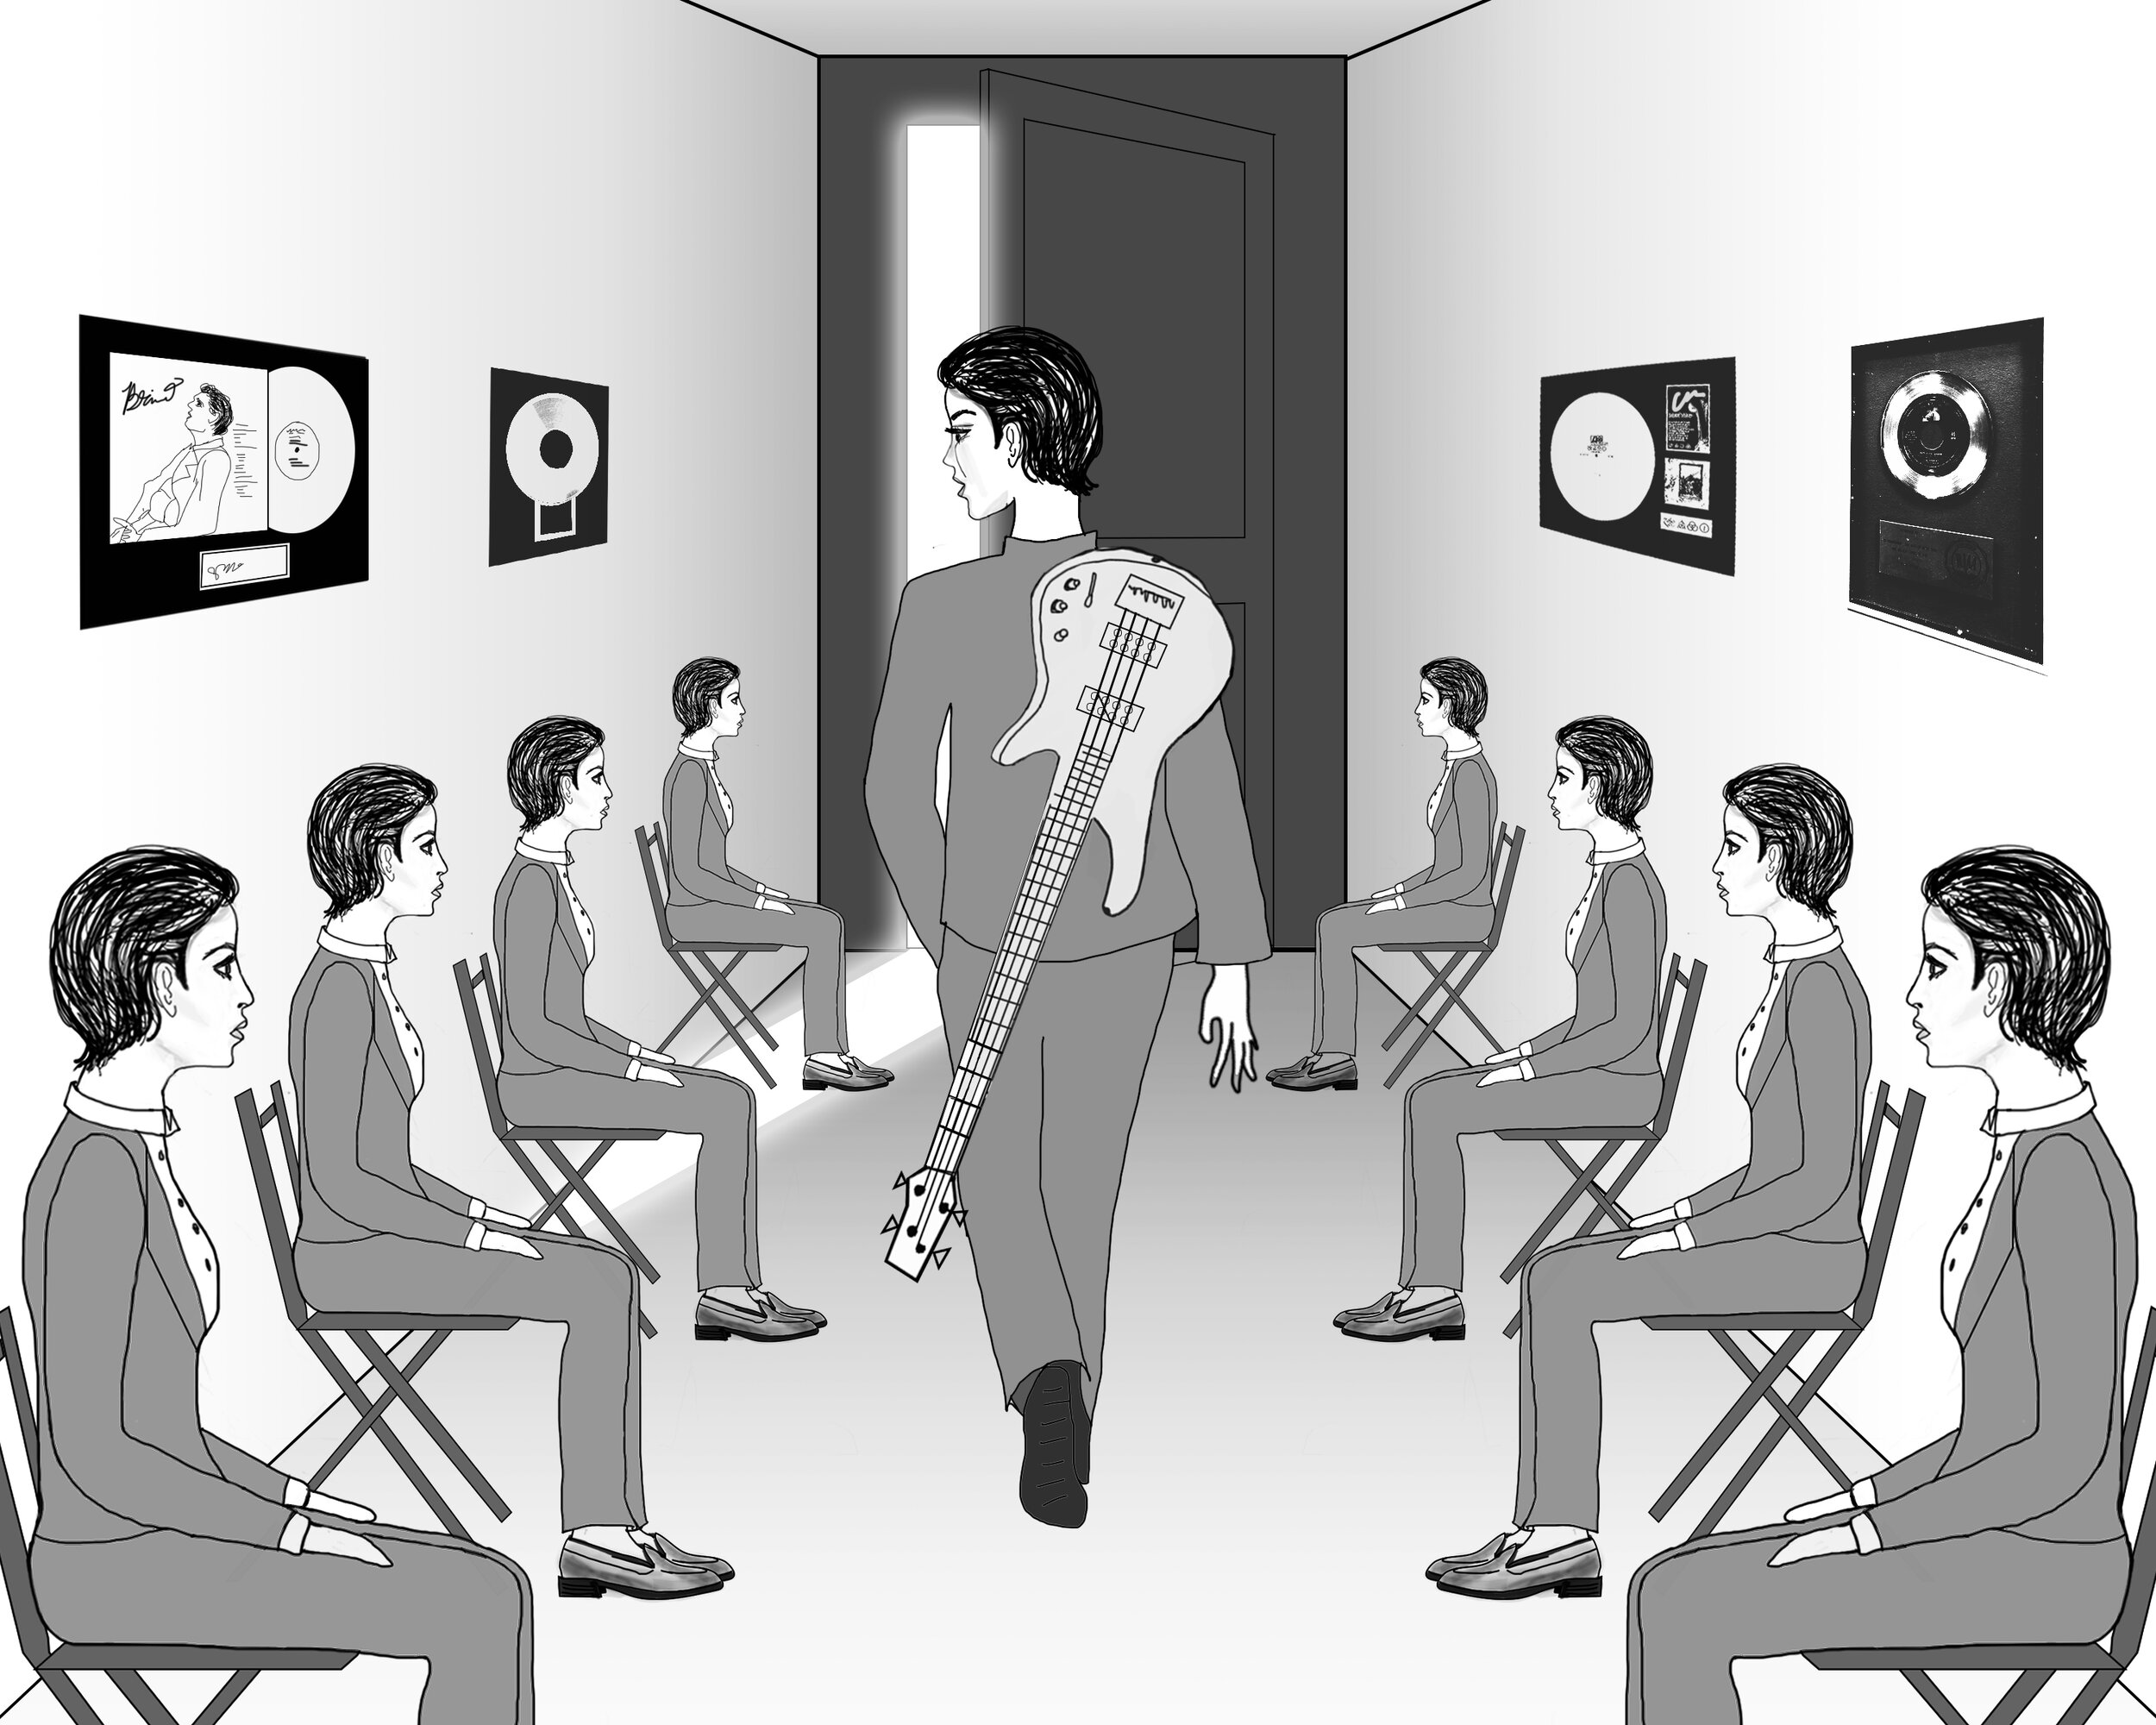 Our main character is a lowly bass player, who shows up to an audition alongside a million women who look just like her. We begin with her walking down a hallway and all these identical-looking women turning their heads to the beat of the music. They look at her with disdain.